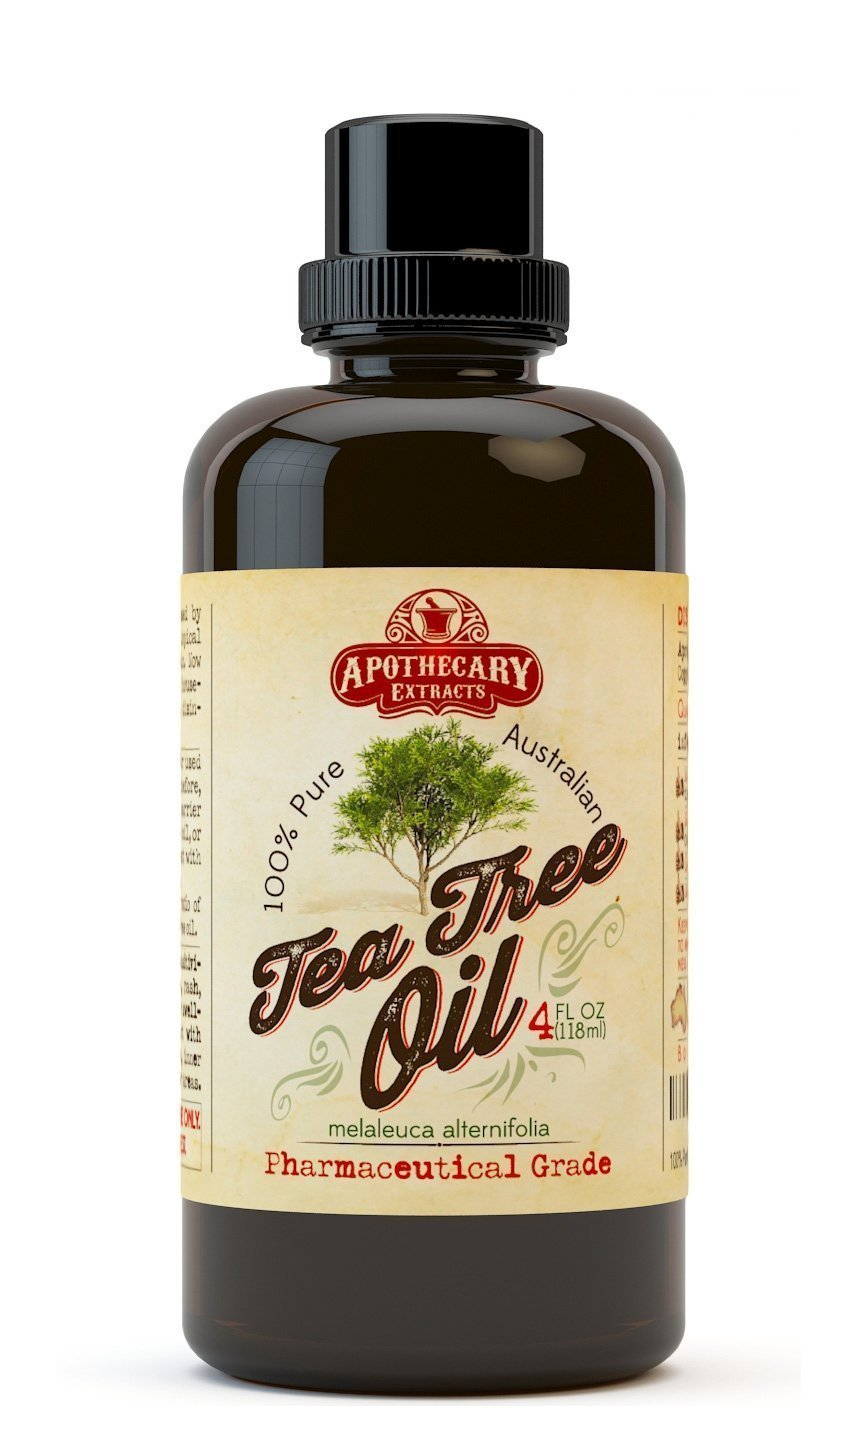 10 Helpful Tips Using Australian Tea Tree Oil